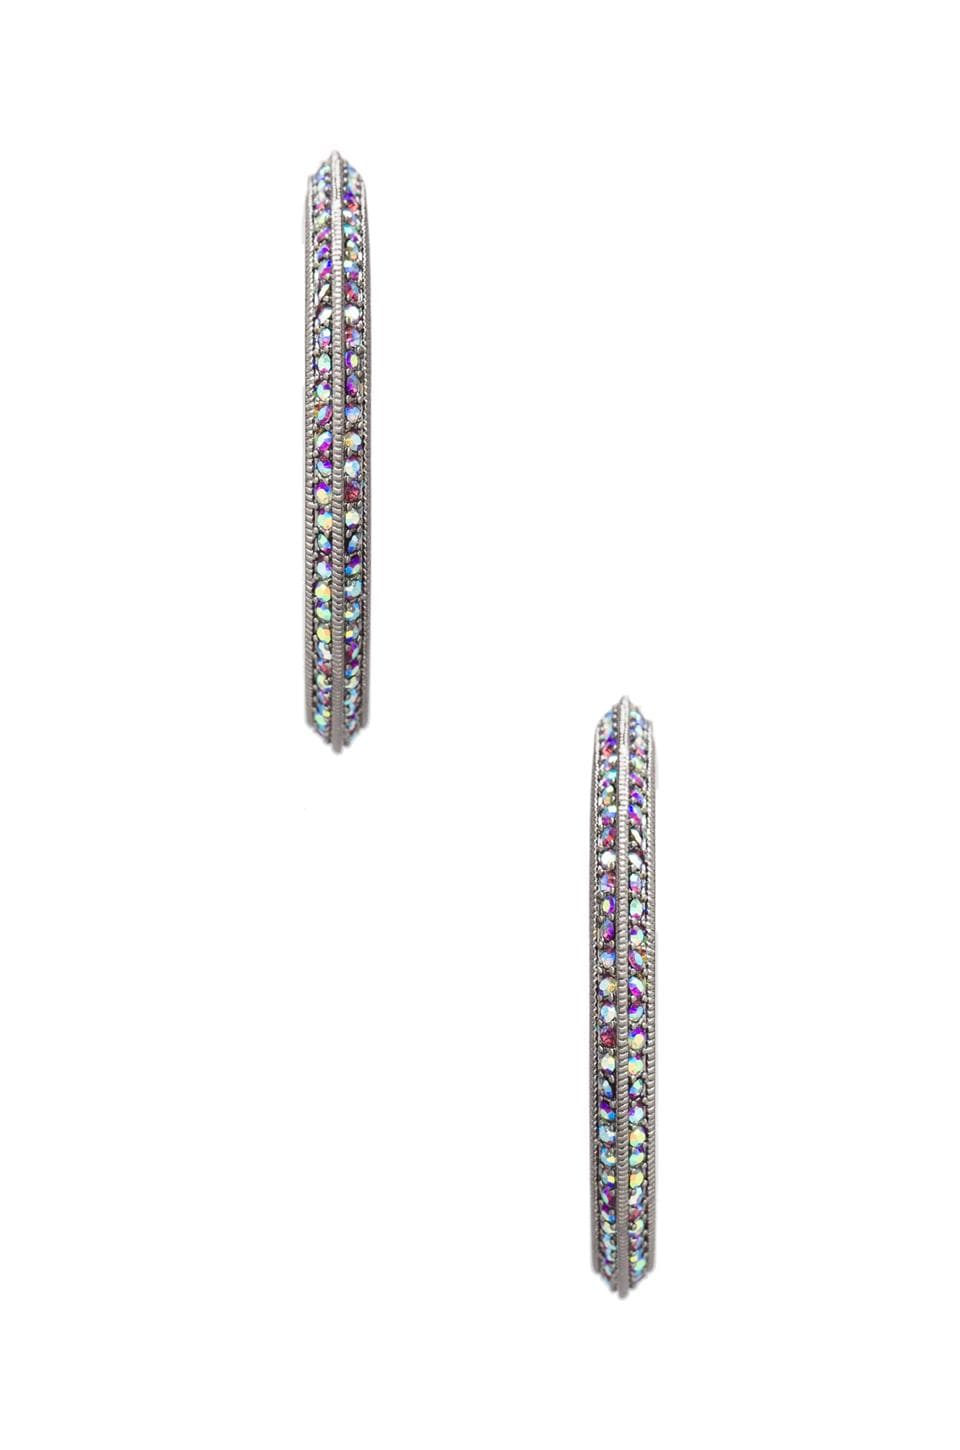 Giles & Brother Pave Pyramid Hoop in Hematite/Iridescent Amethyst